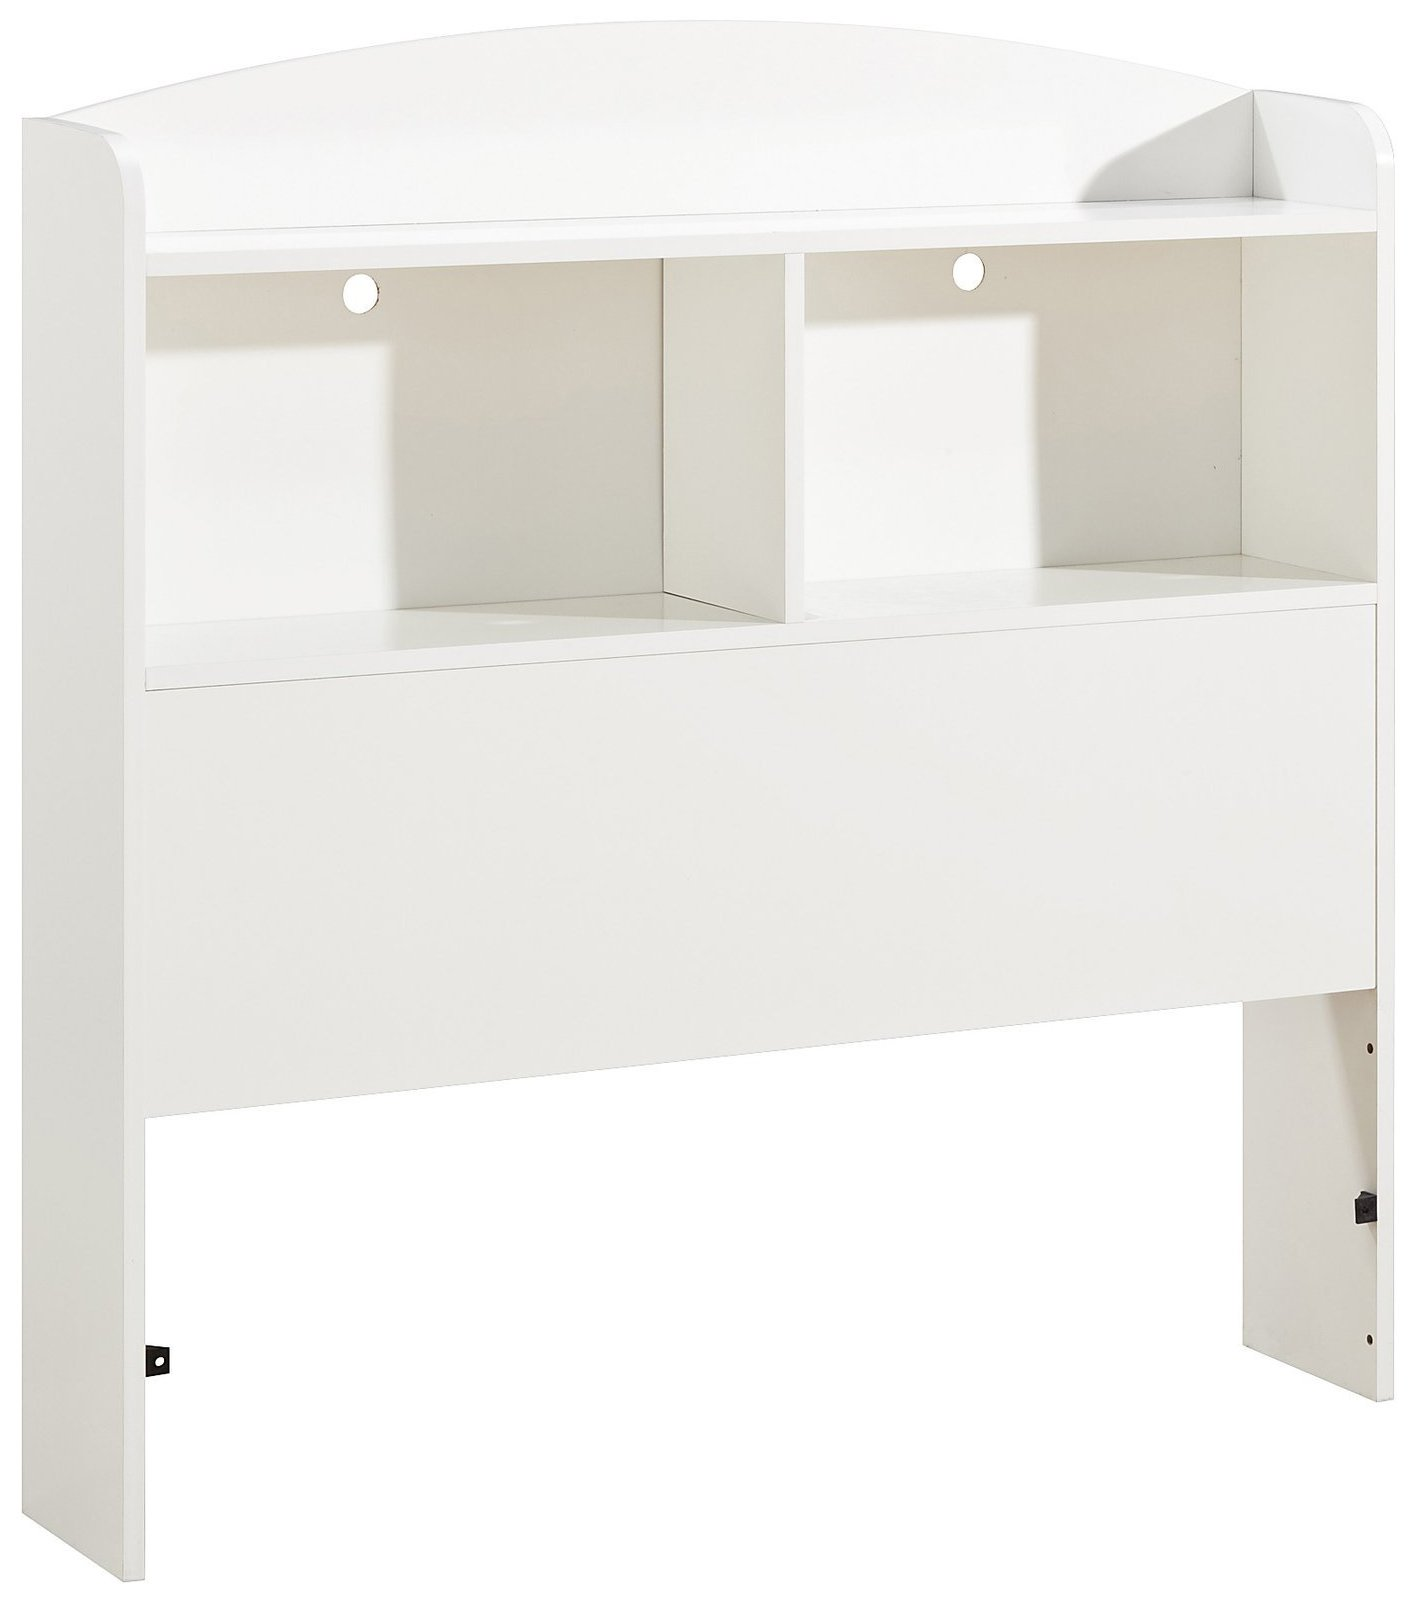 South Shore Logik Bookcase Headboard with Storage, Twin 39-inch, White